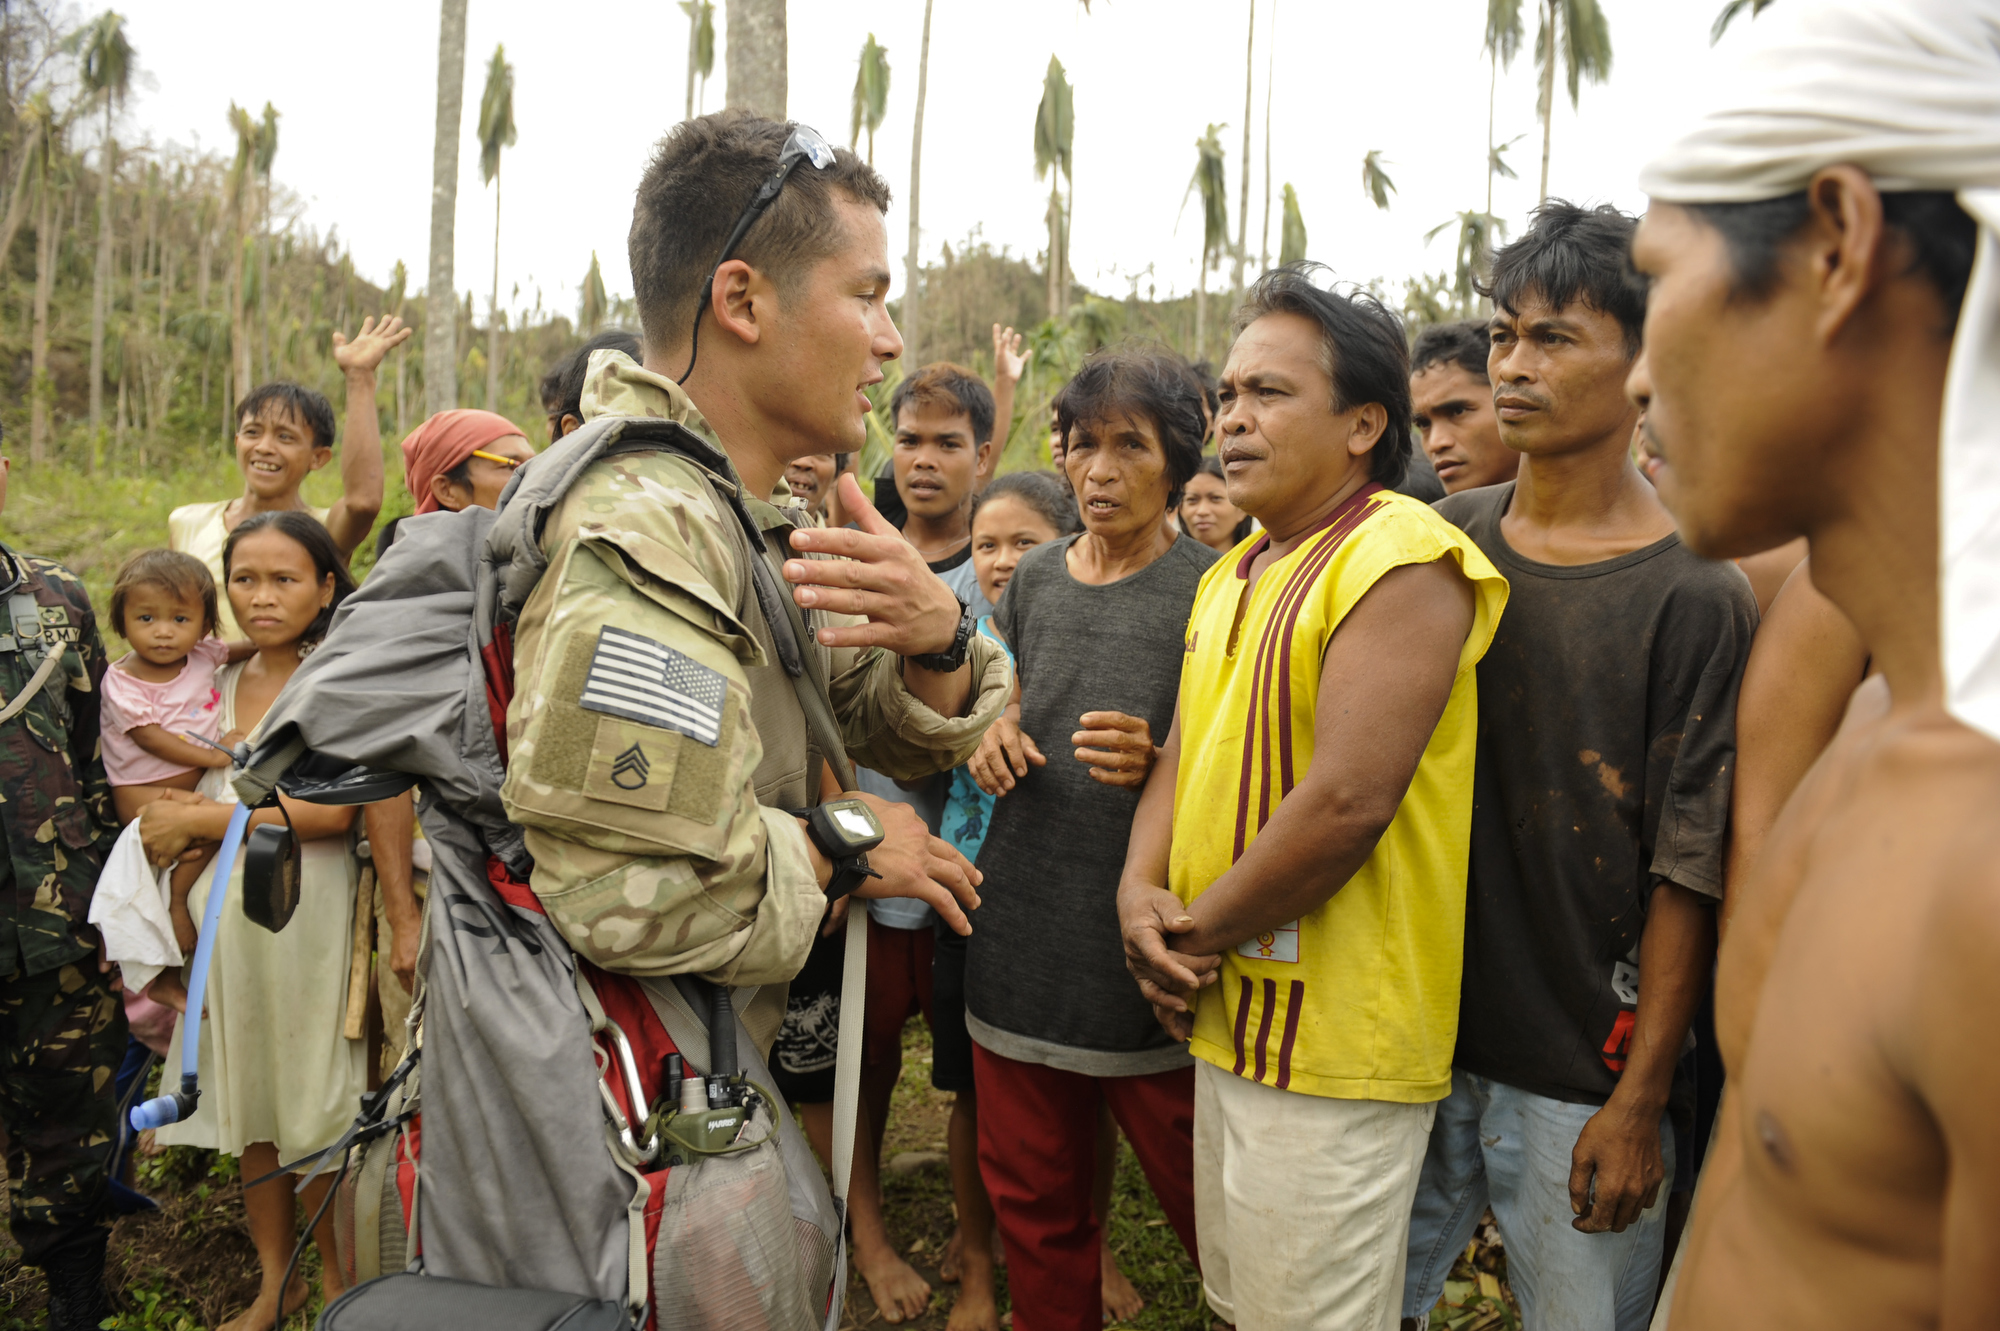 Staff Sgt. Andrew Guingona from the 1st Special Forces Group, A Company, 4th Battalion, talks with residents about receiving relief supplies from a US Navy helicopter from HSC-12 on Wednesday, November 20, 2013. Guingona said by bringing Filipino aid workers and soldiers, it helped maintain order at a supply drop. (Mike Morones/Staff)